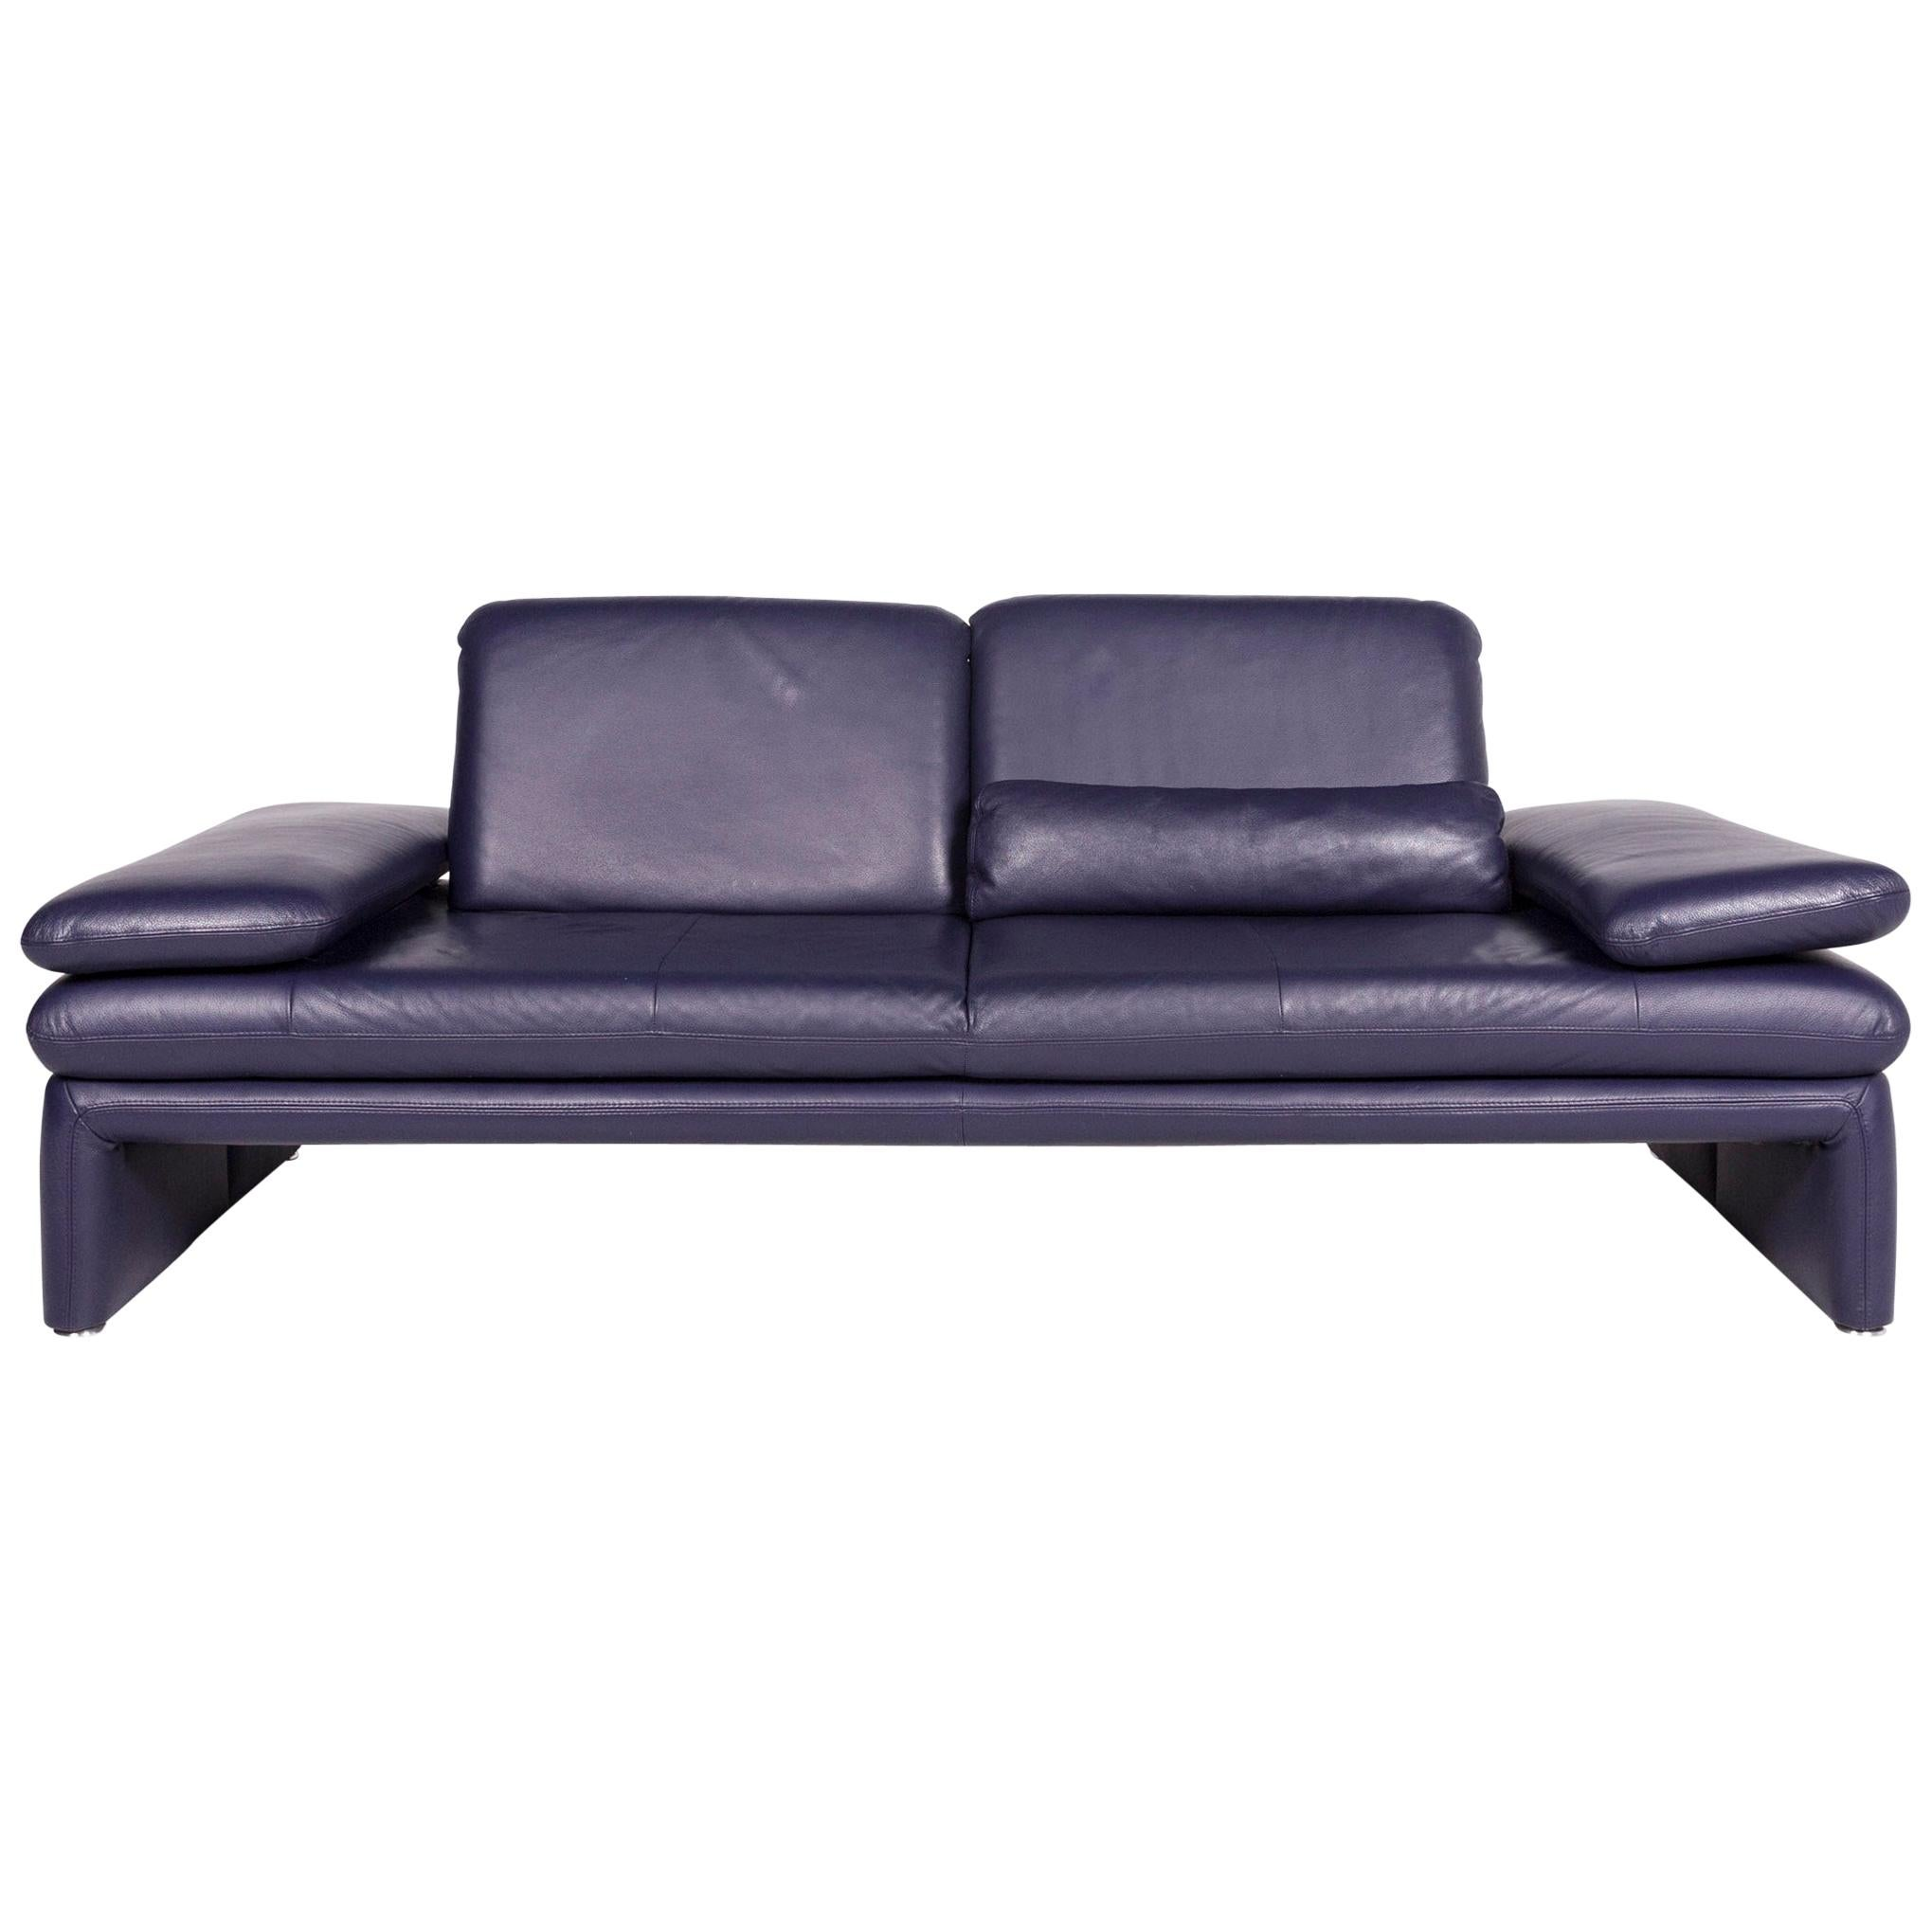 Prime Leather 3 Seat Sofas 2311 For Sale On 1Stdibs Pdpeps Interior Chair Design Pdpepsorg